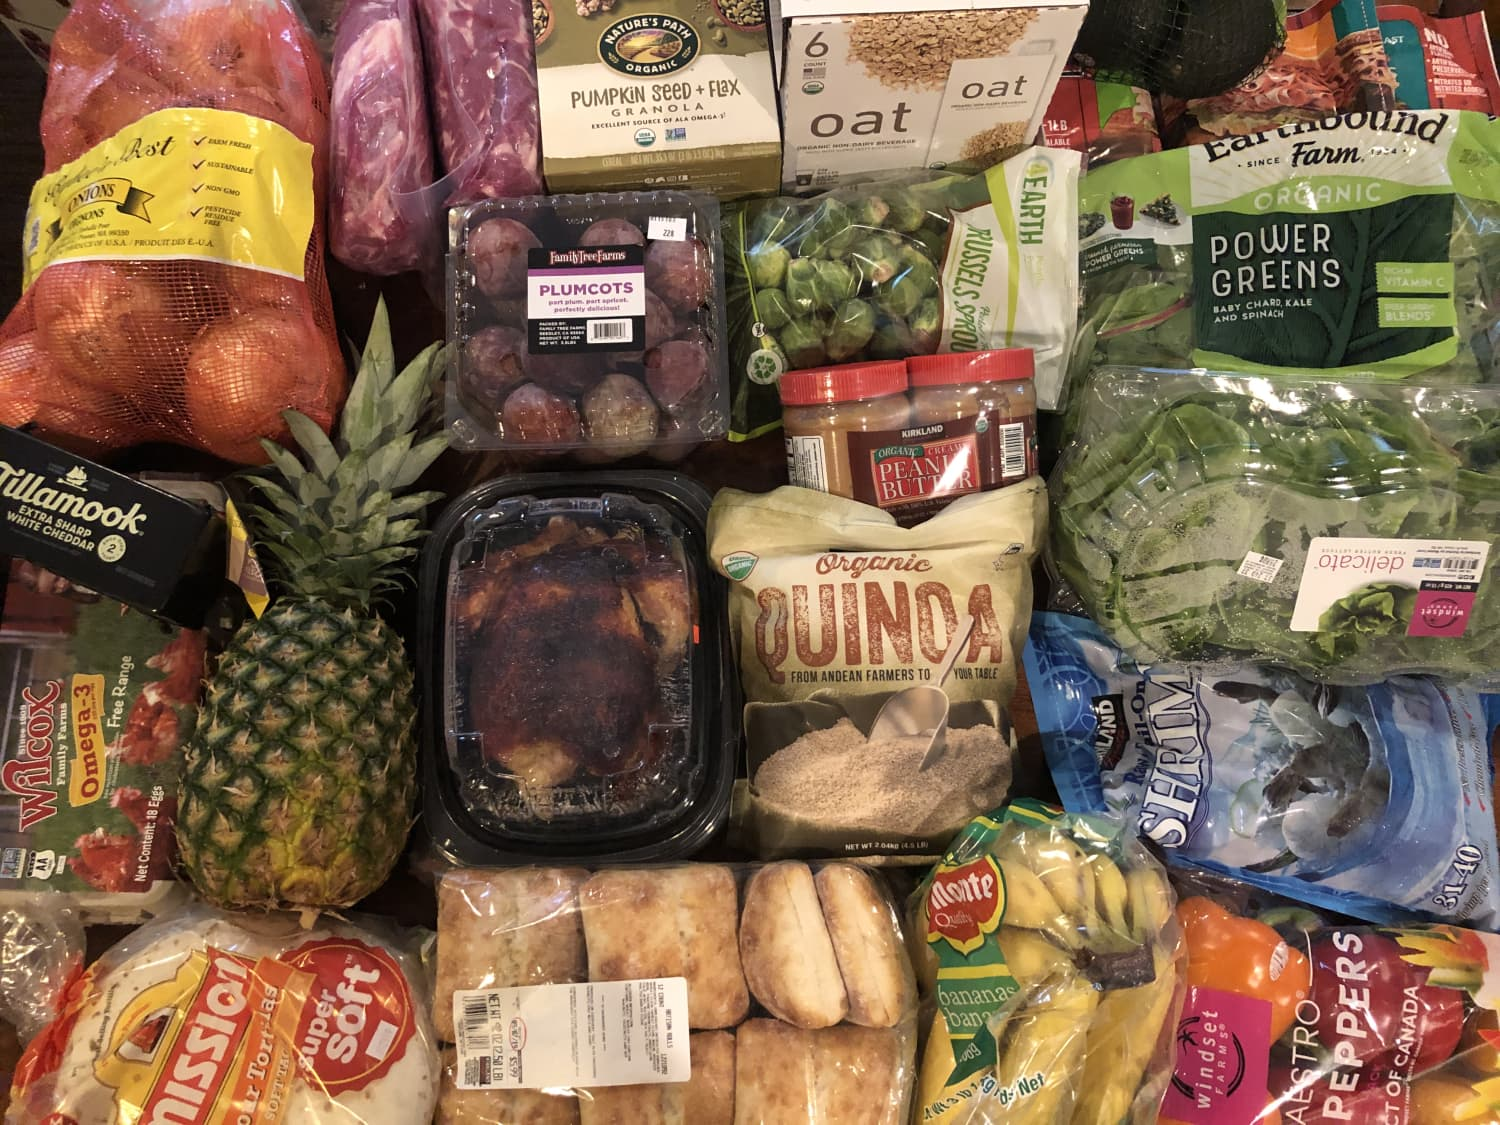 This Costco Haul Cost $161 — And I Turned It into More than 21 Meals for a Family of Four